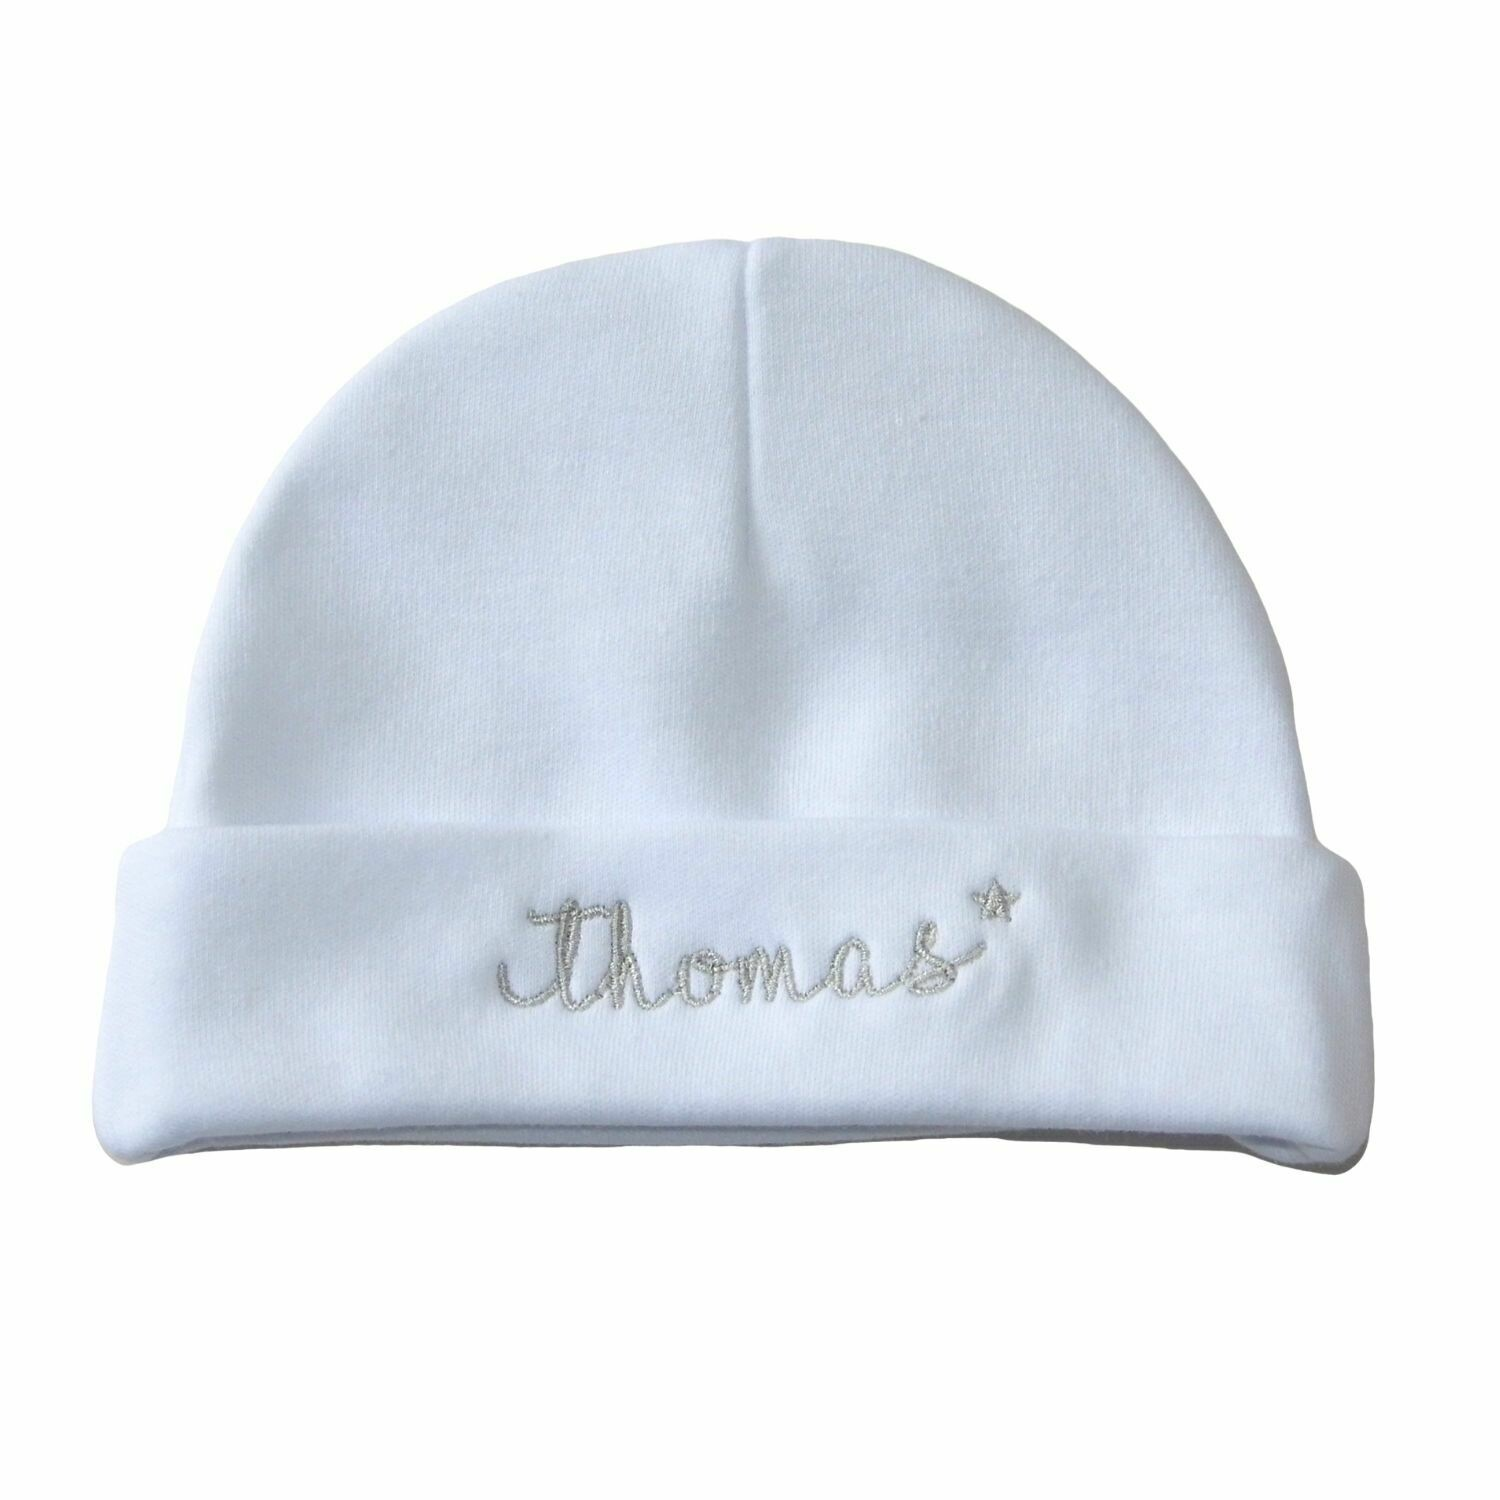 Personalised Baby Hat with Star & Name - Newborn to 3 Months